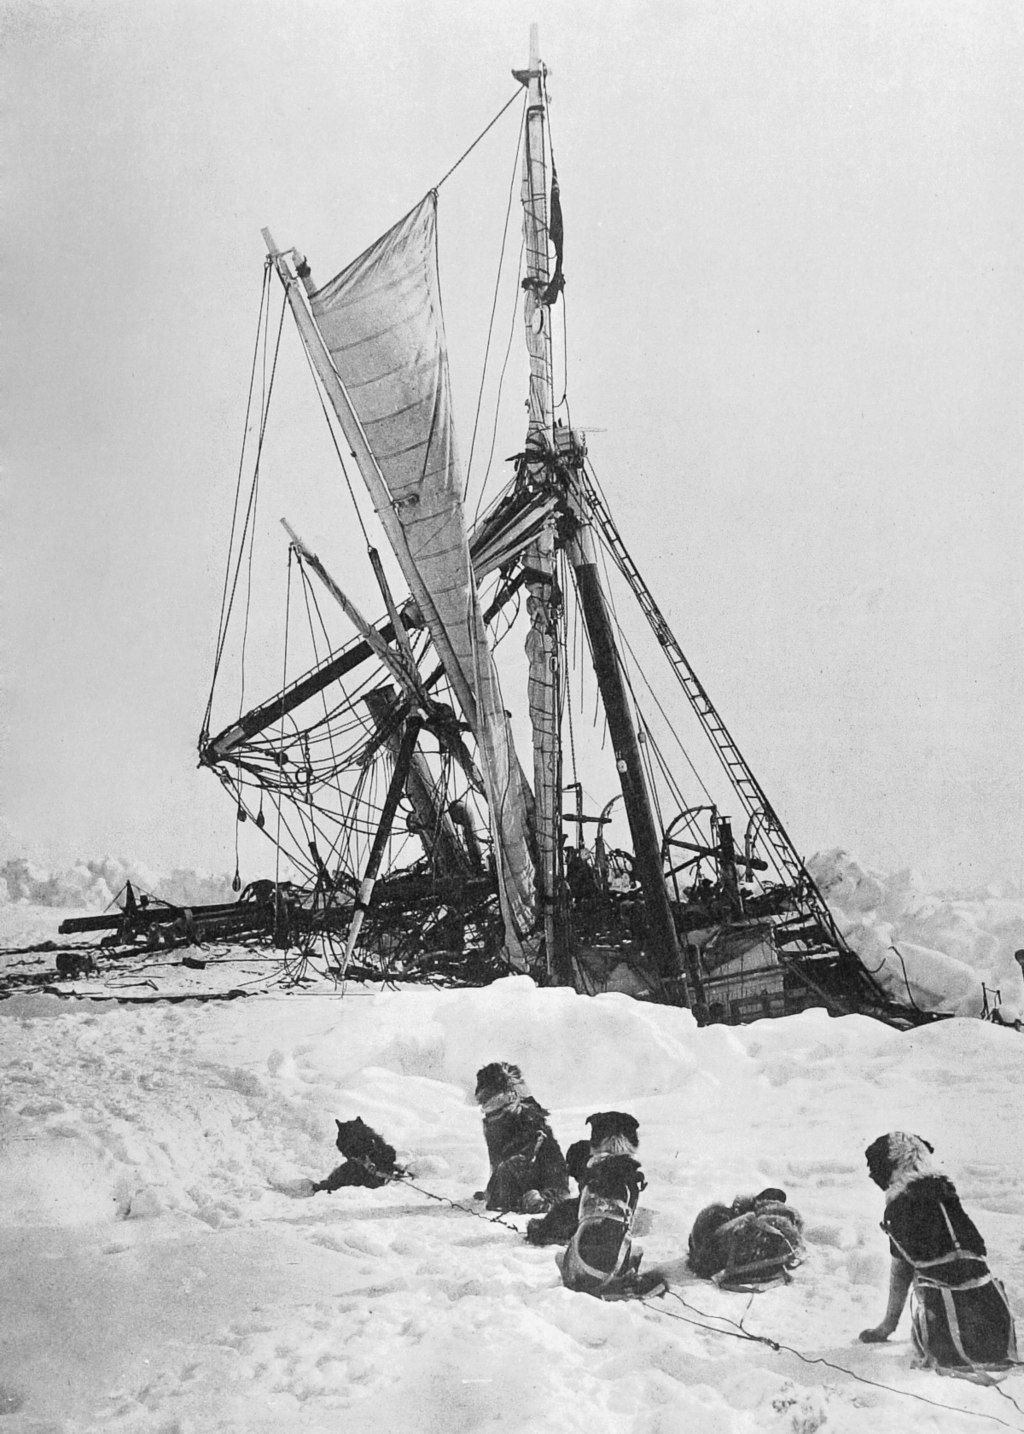 Antarctic Research Ship to Search for Wreck of Shackleton's